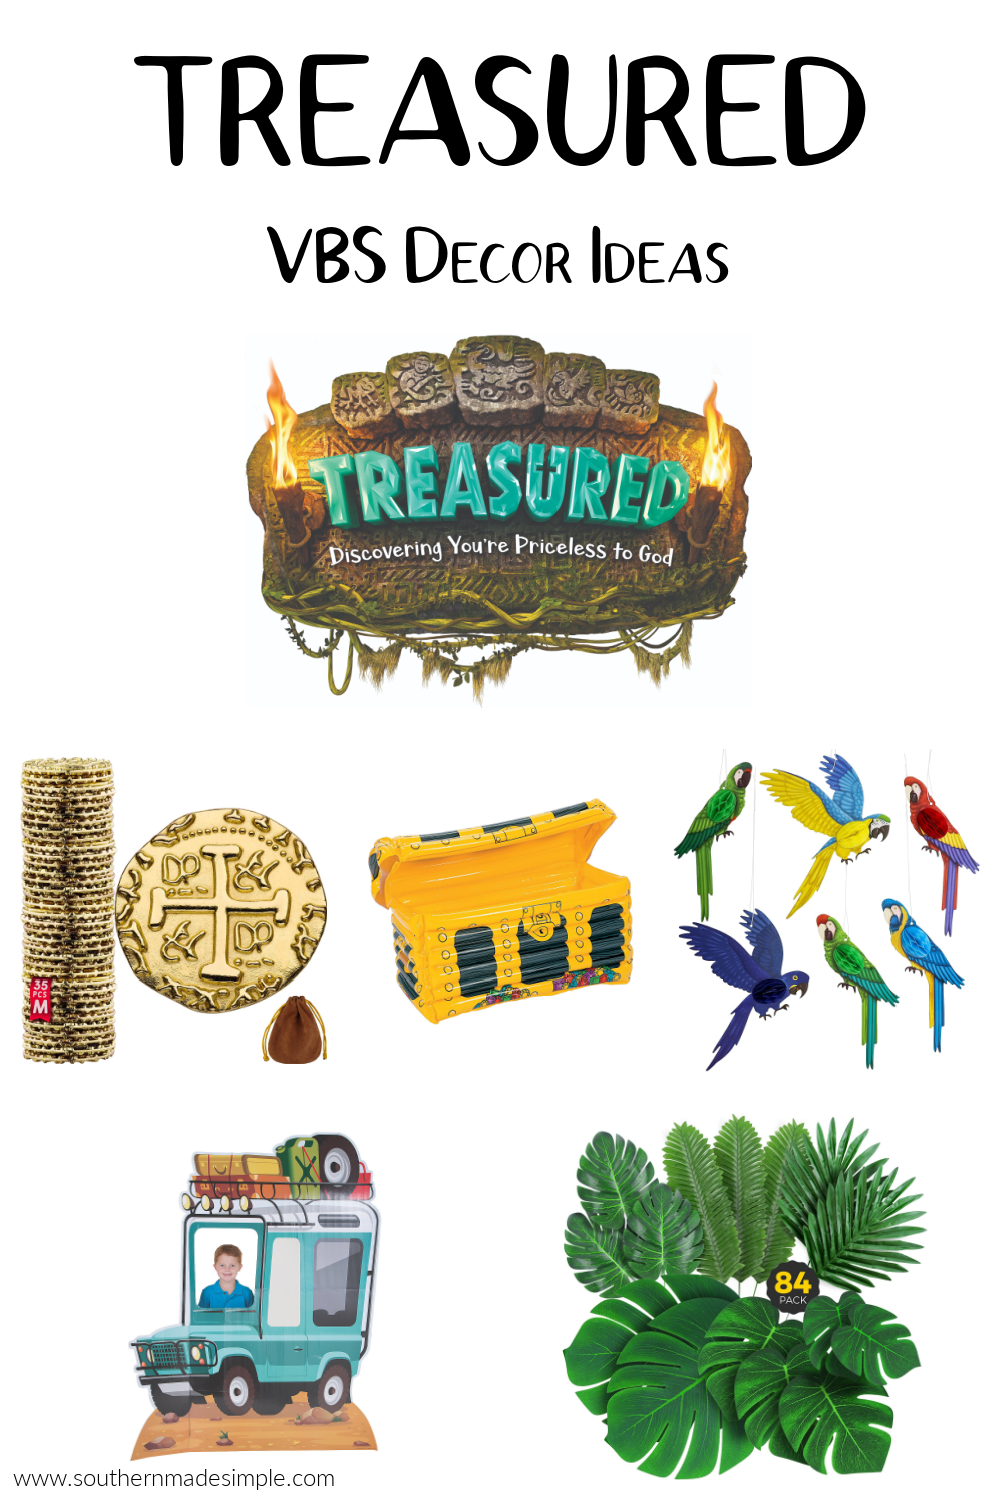 Treasured VBS Decor Ideas